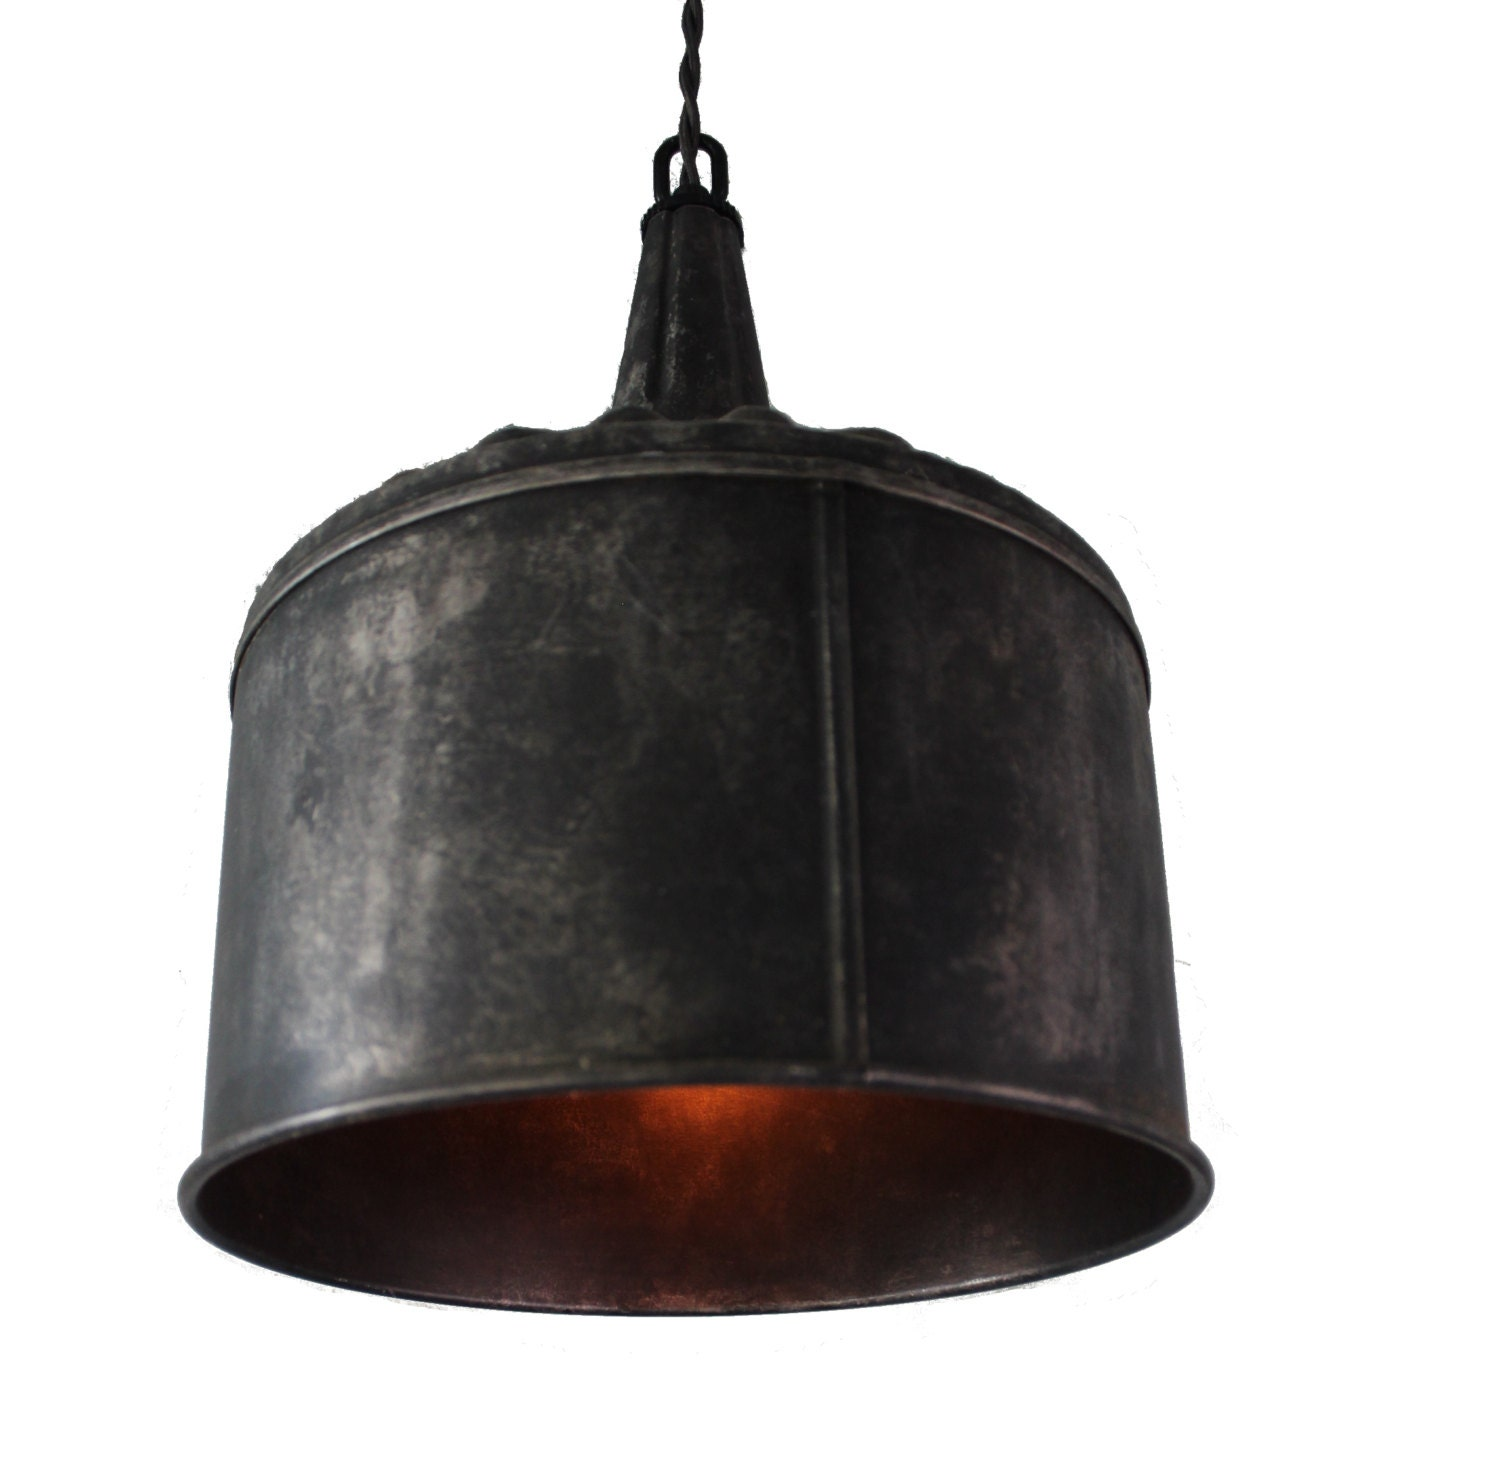 Items Similar To Galvanized Light Rustic Industrial: Large Funnel Pendant Light In Black Steel Or Galvanized Aged